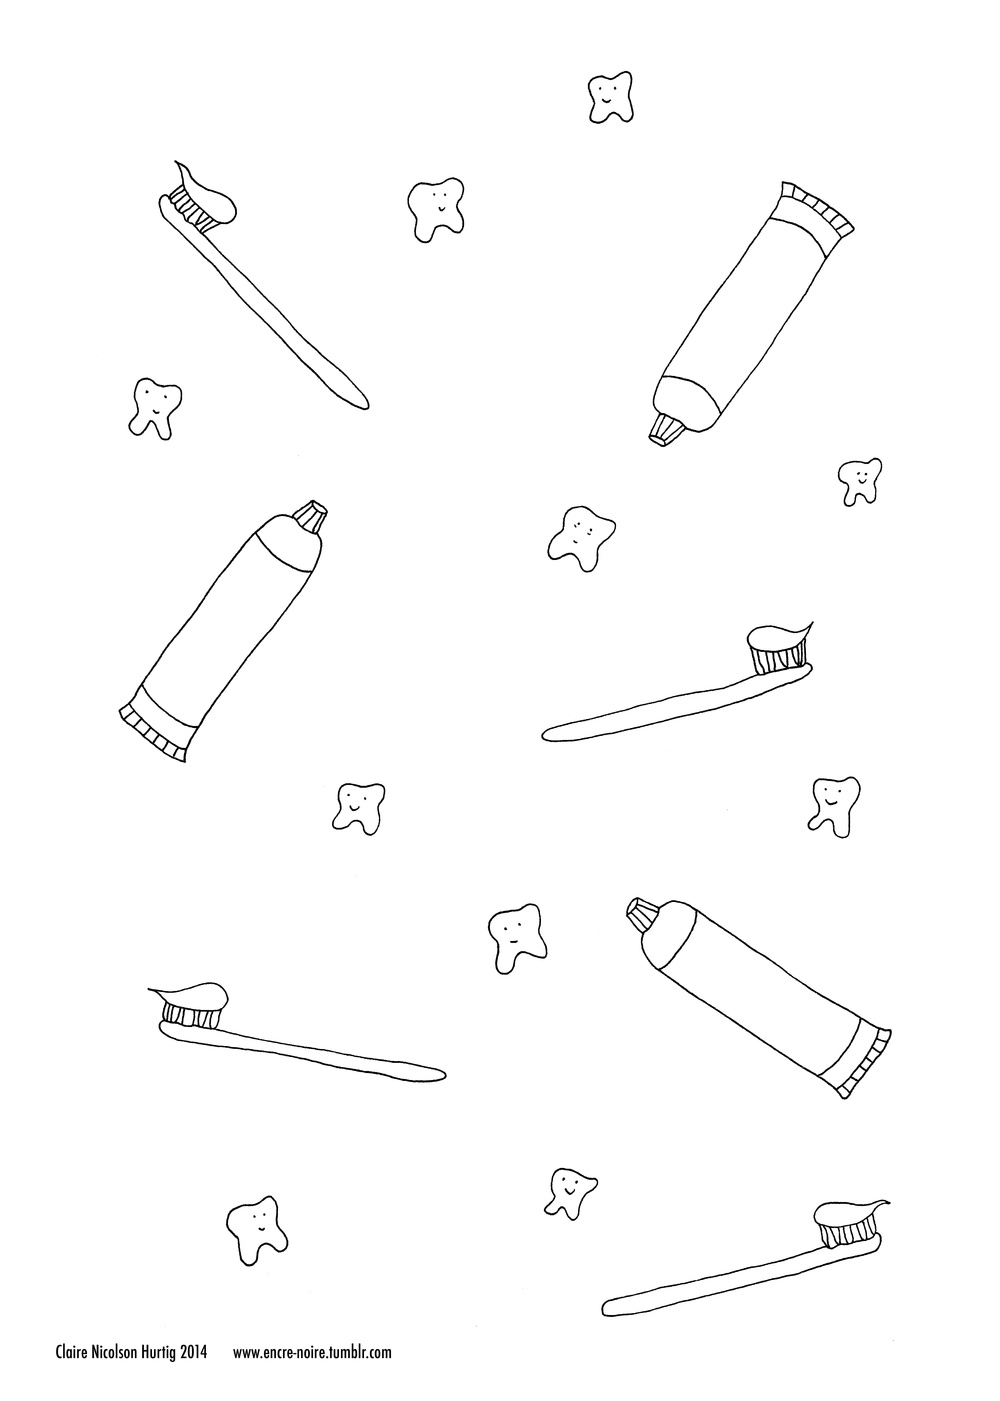 19 Toothbrush and Toothpaste web.jpg